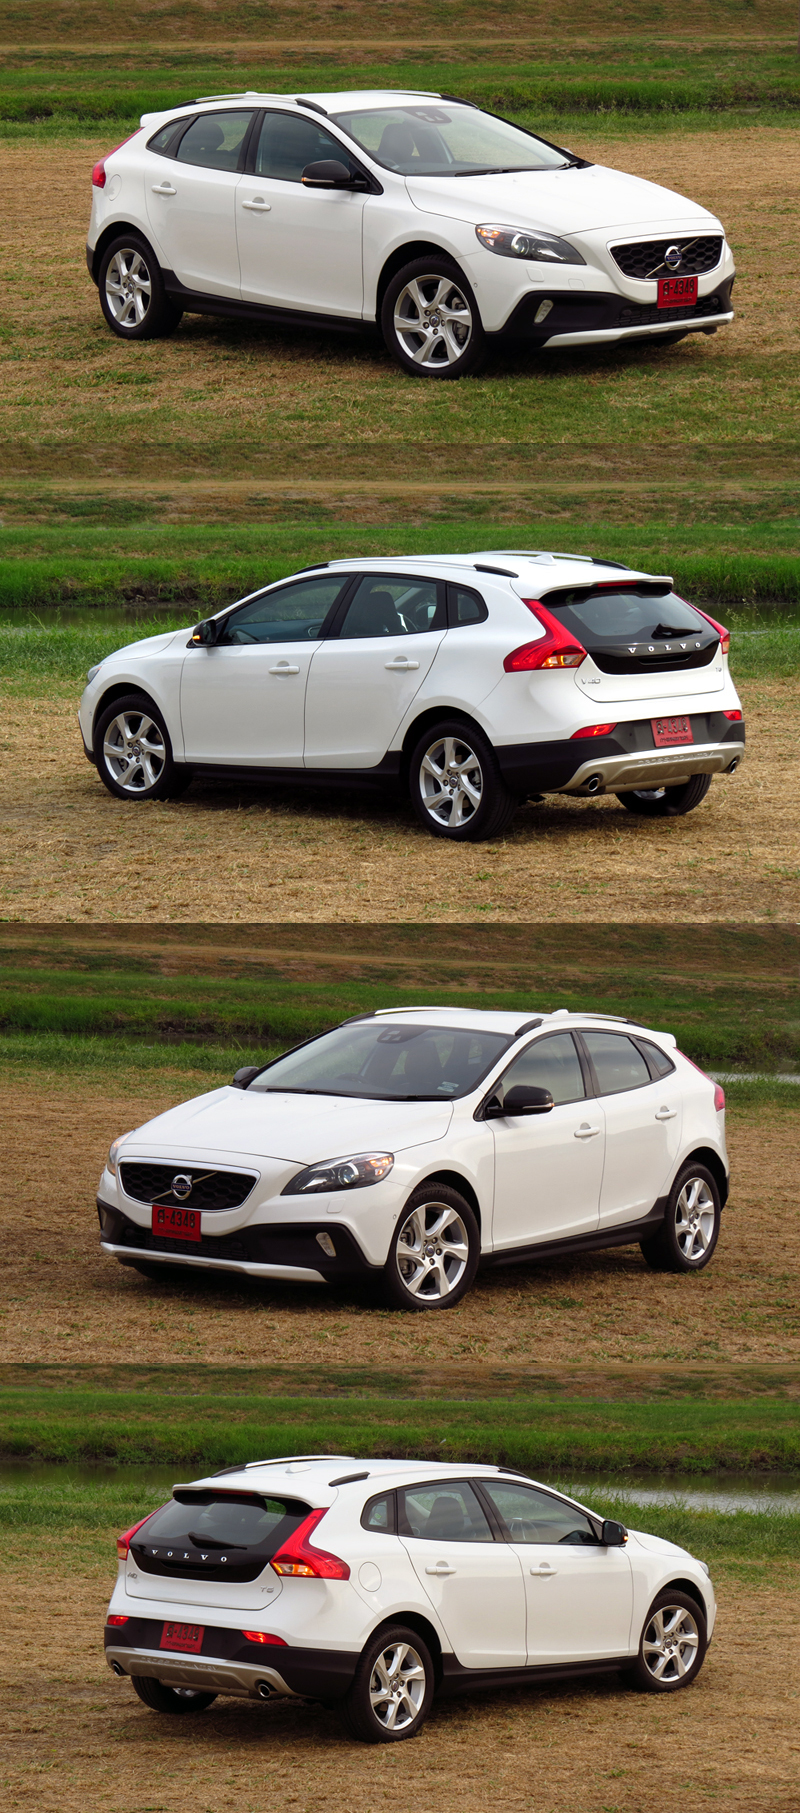 2014_Volvo_V40_08_CrossCountry_EDIT